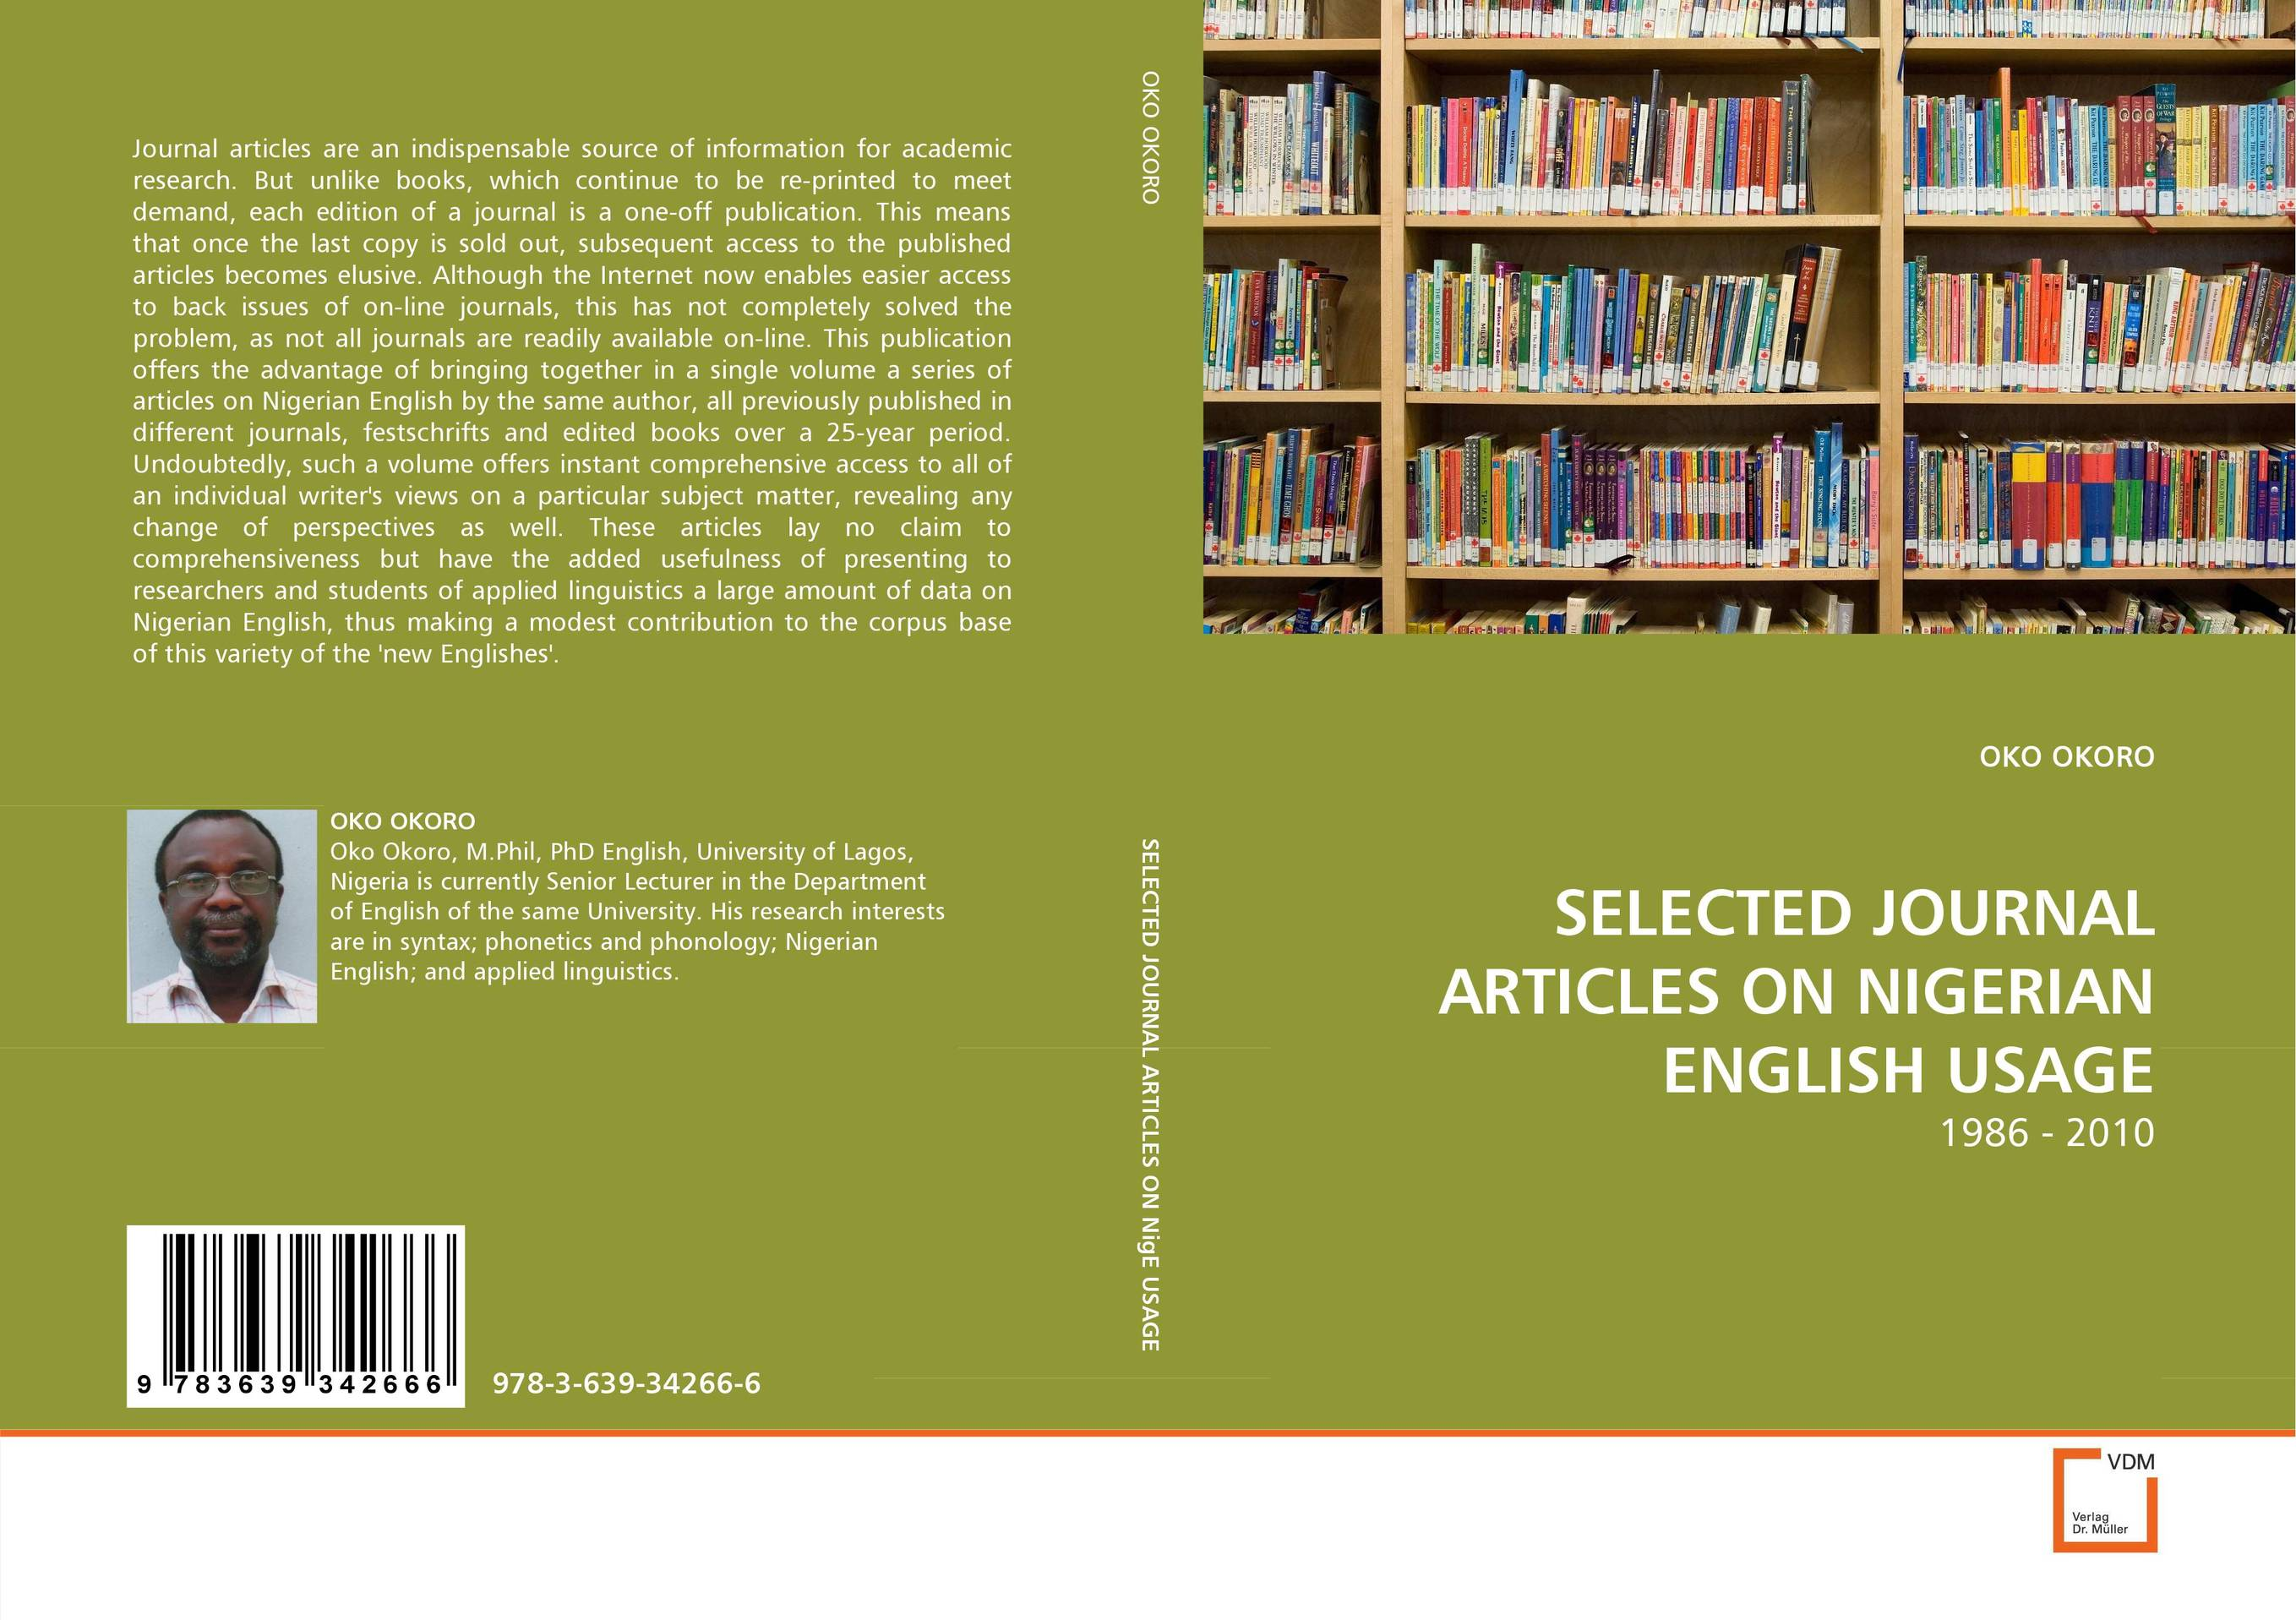 SELECTED JOURNAL ARTICLES ON NIGERIAN ENGLISH USAGE adam smith the wealth of nations the economics classic a selected edition for the contemporary reader